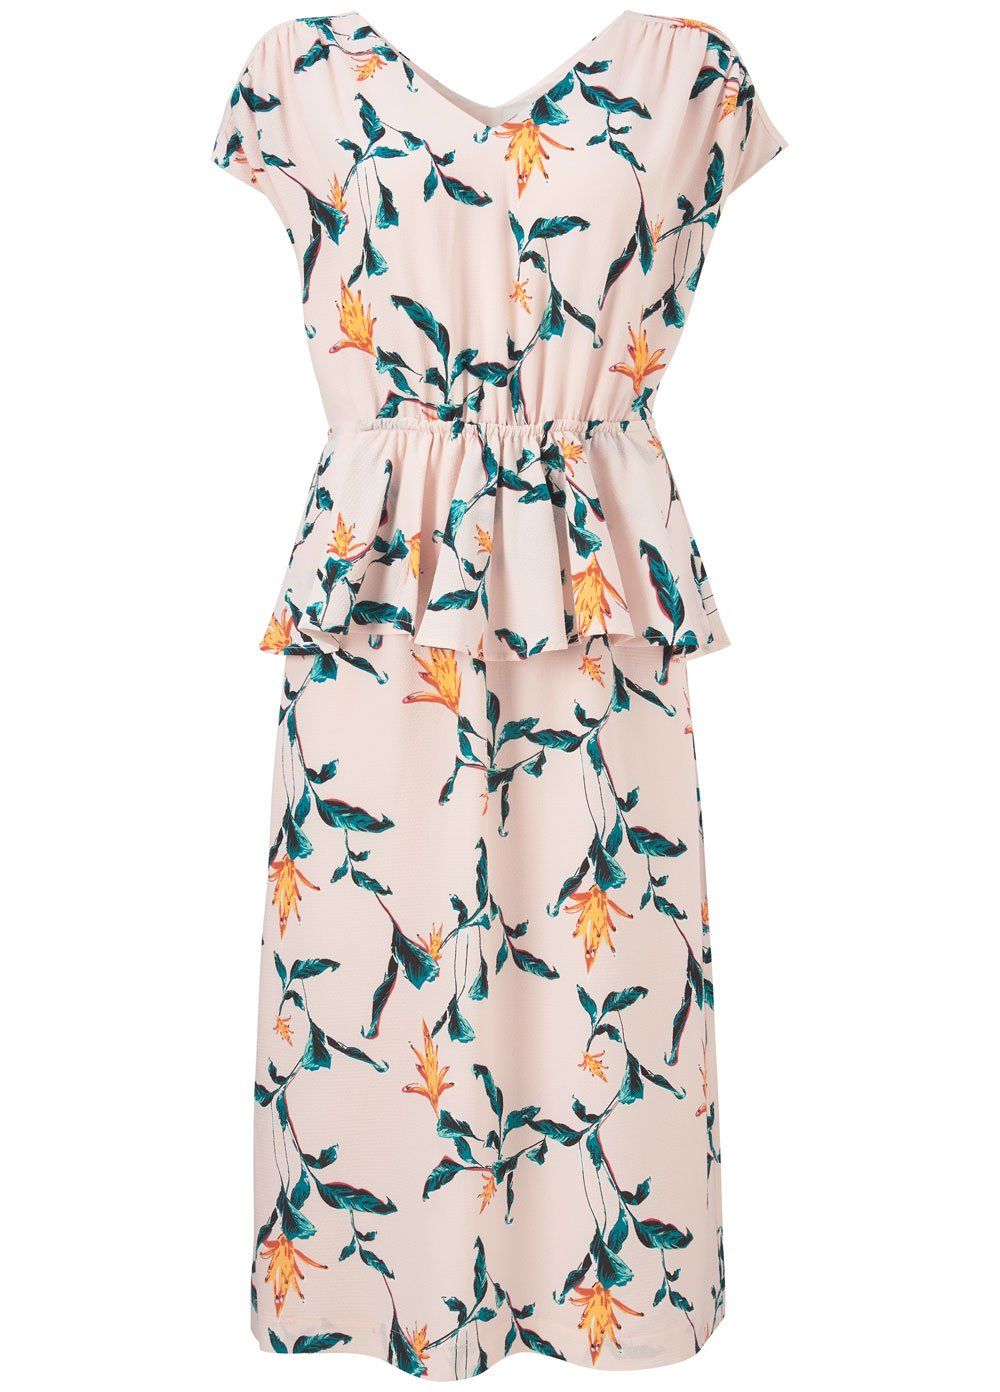 Genesis Print Long Dress - Rose Tropical